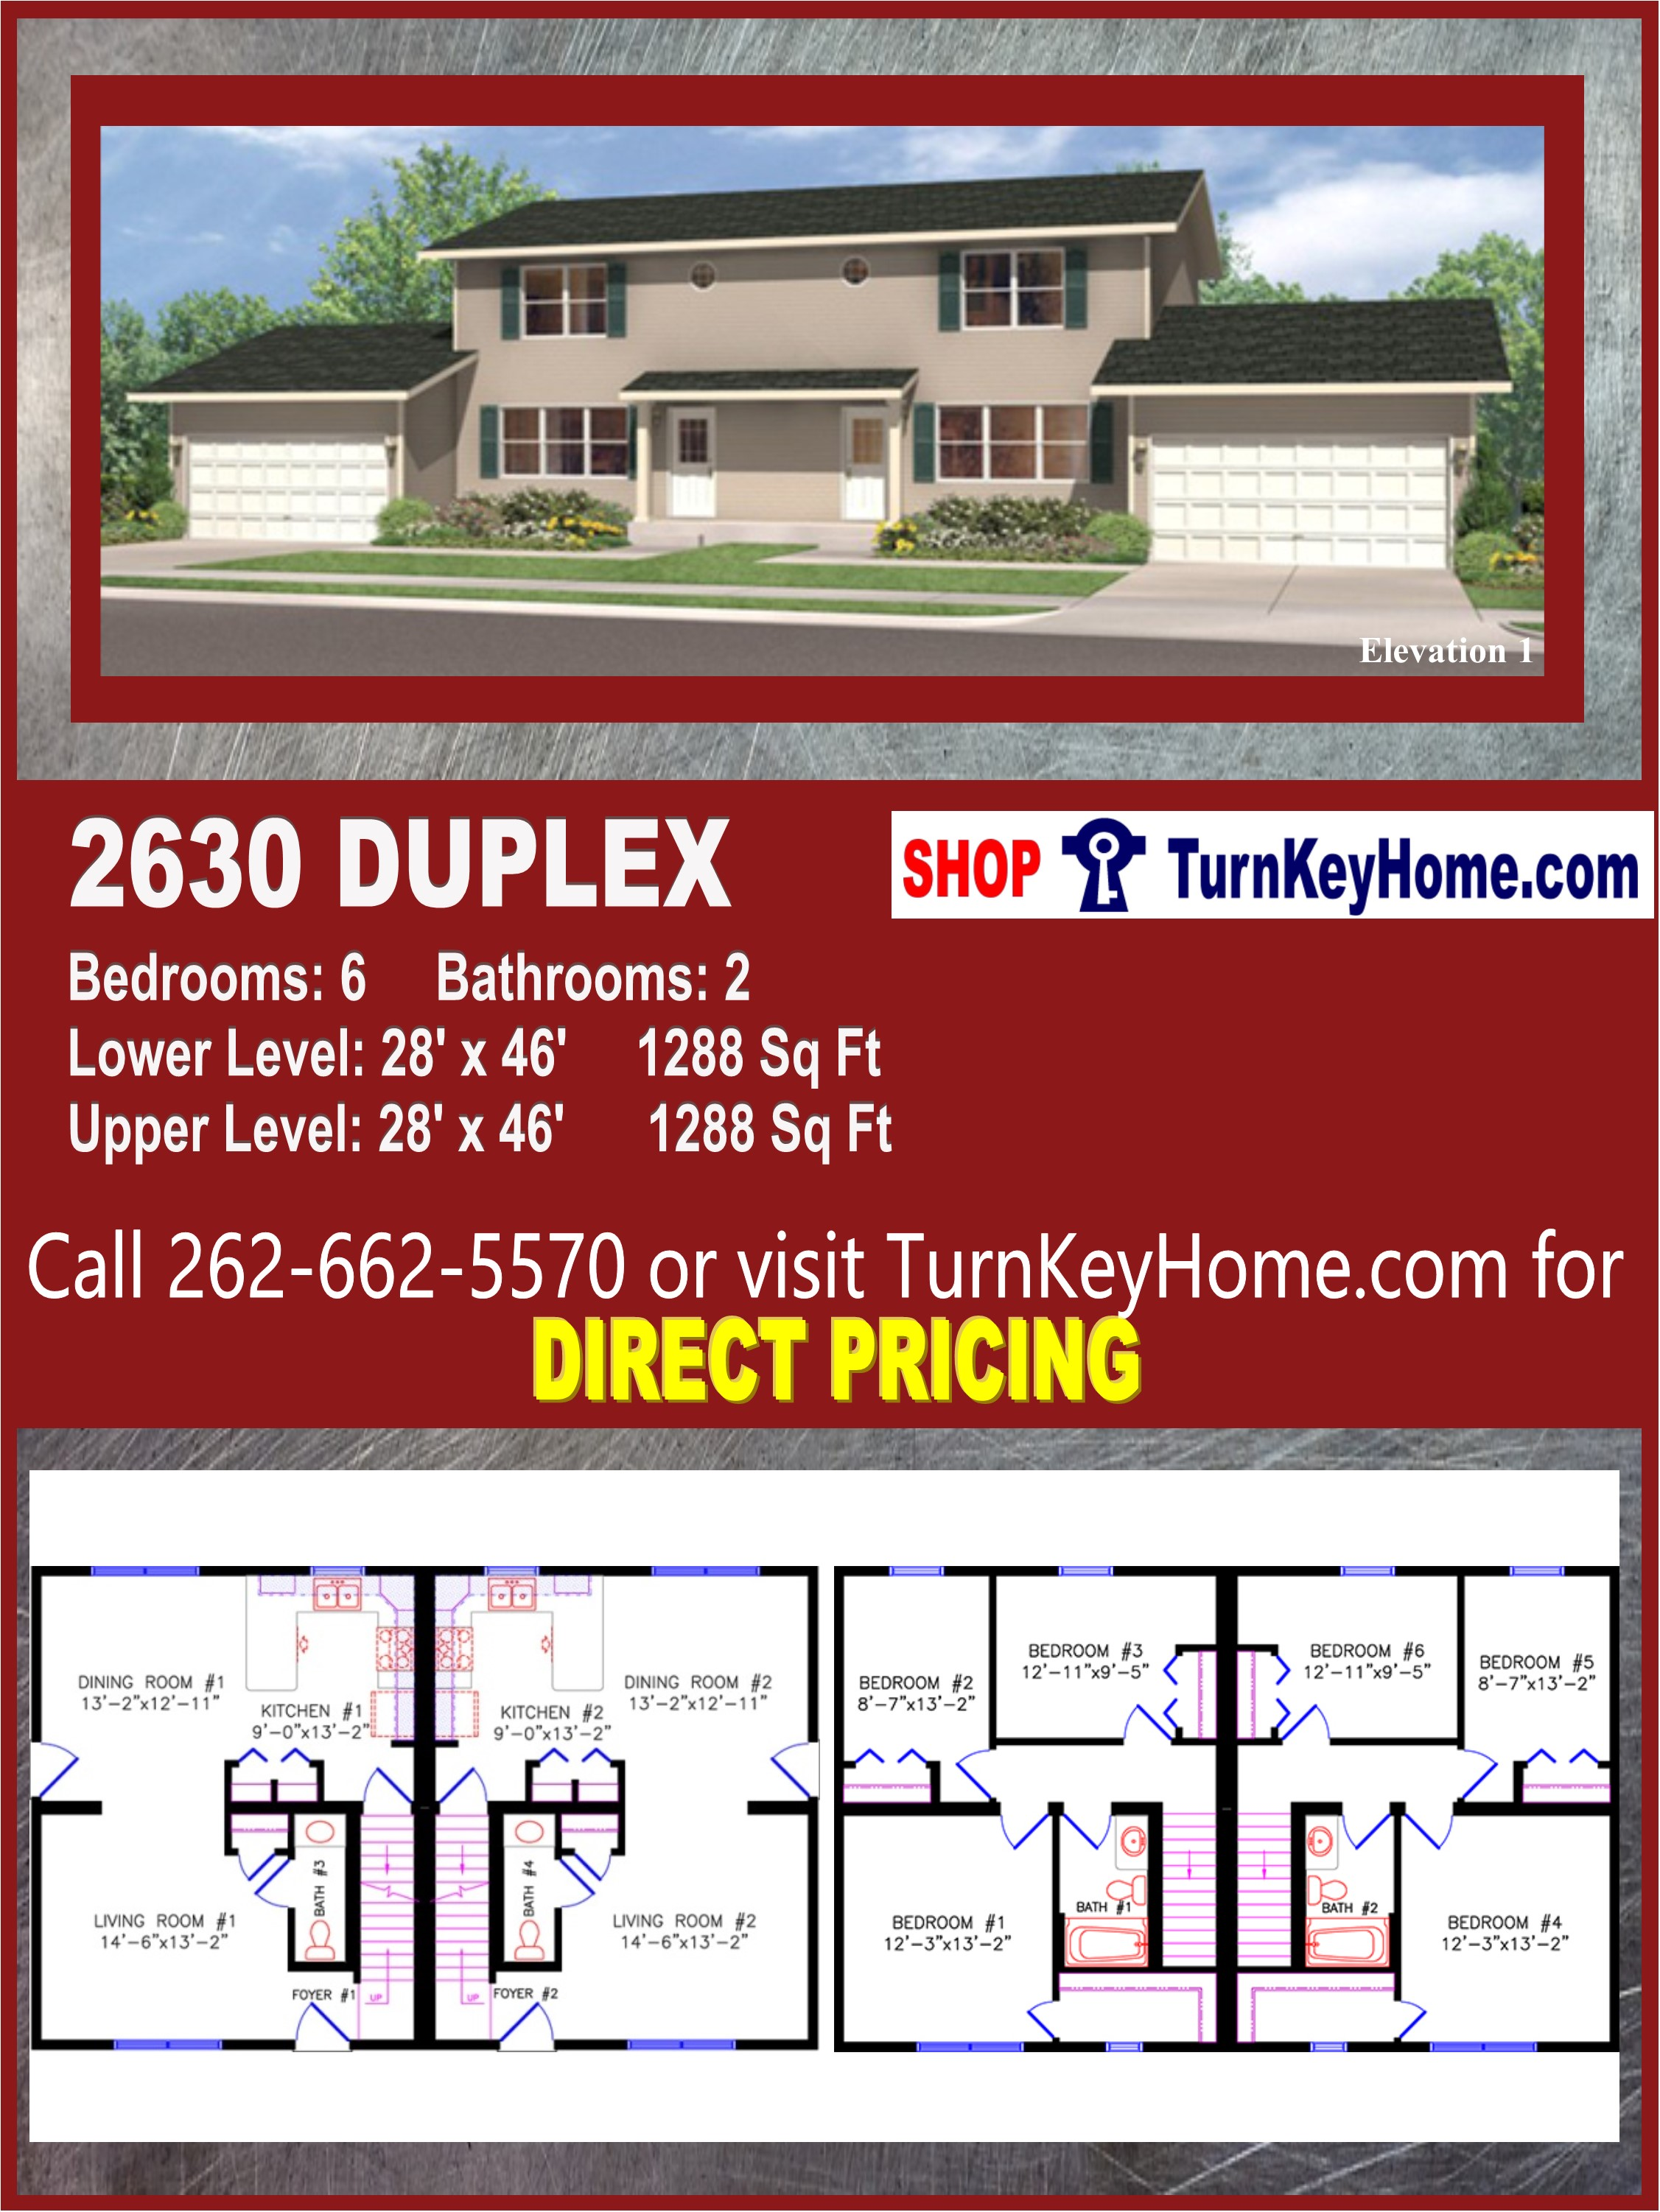 2630 DUPLEX E1 Multi Family Style Home 3 Bed 2 Bath Plan Priced from on more home plans, modular apartment plans, modular ranch home plans, mobile home add-on plans, modular cape cod house plans, modular cottage home plans, modular tri level home plans, modular townhouse plans, modular farmhouse plans, modular vacation home plans, modular bungalow house plans,